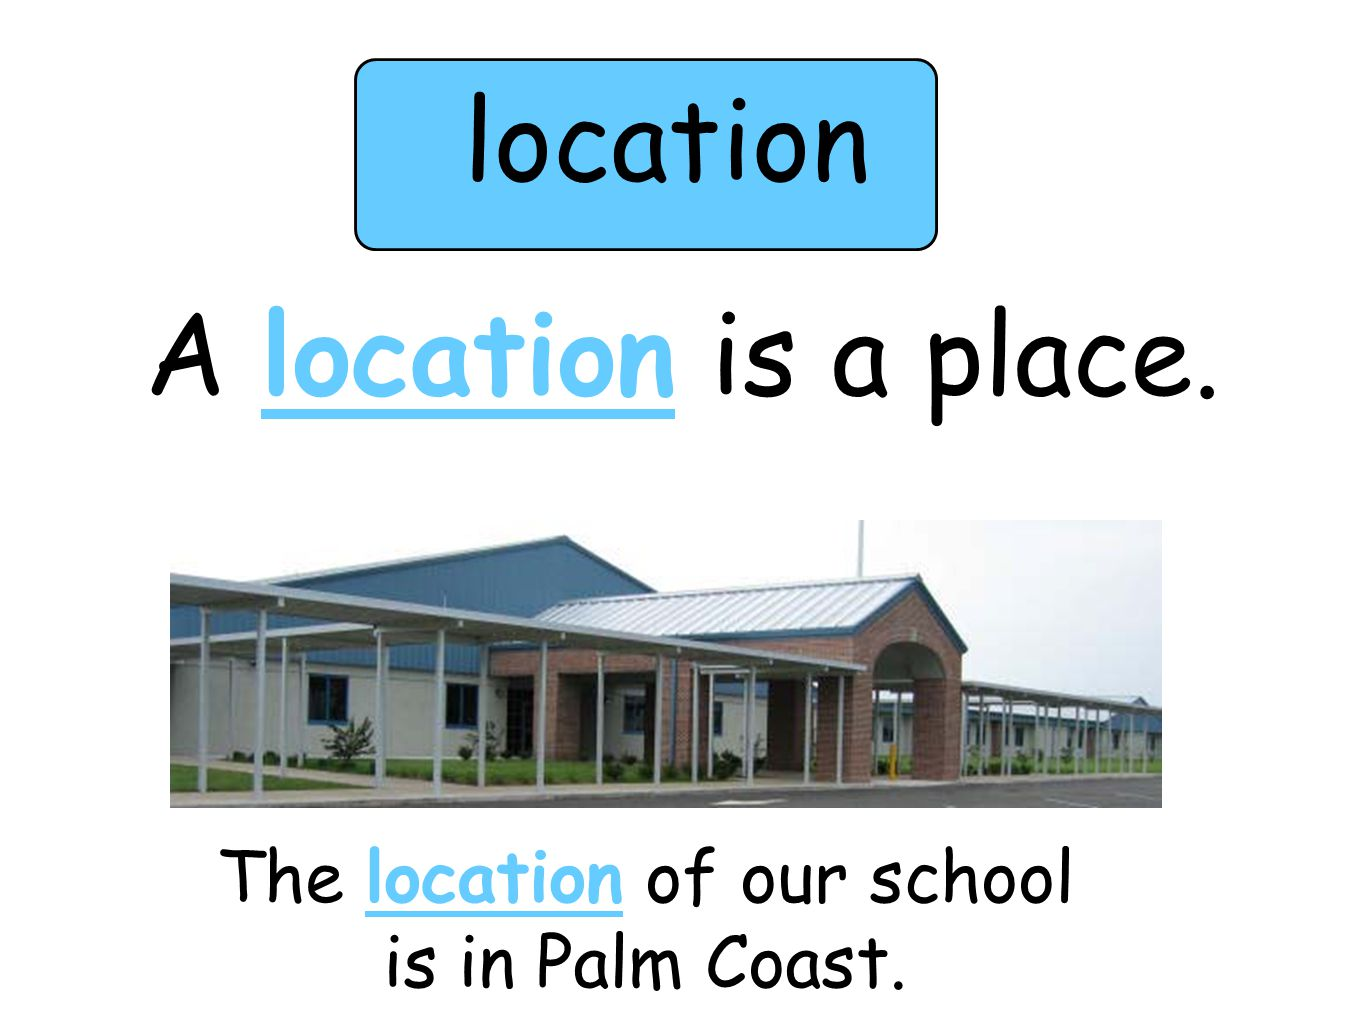 location A location is a place. The location of our school is in Palm Coast.